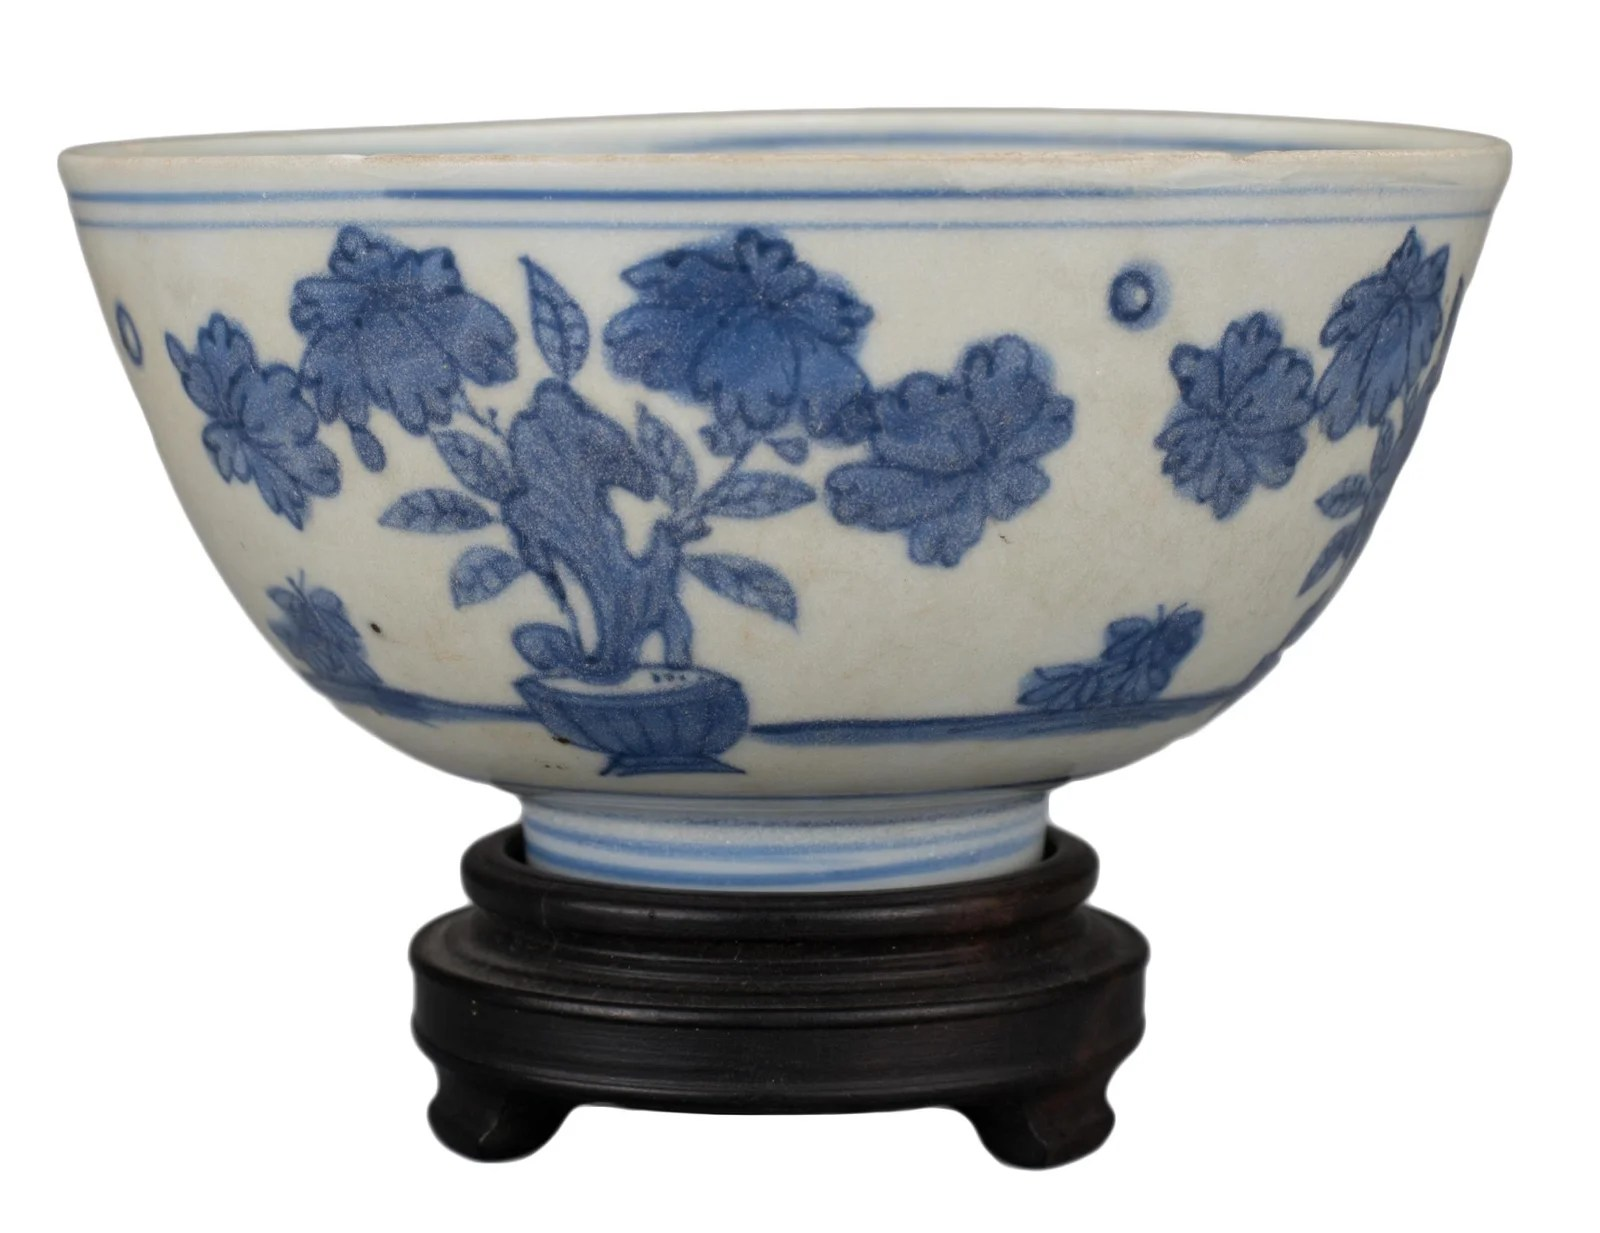 CHINESE BLUE AND WHITE PORCELAIN BOWL, MING DYNASTY